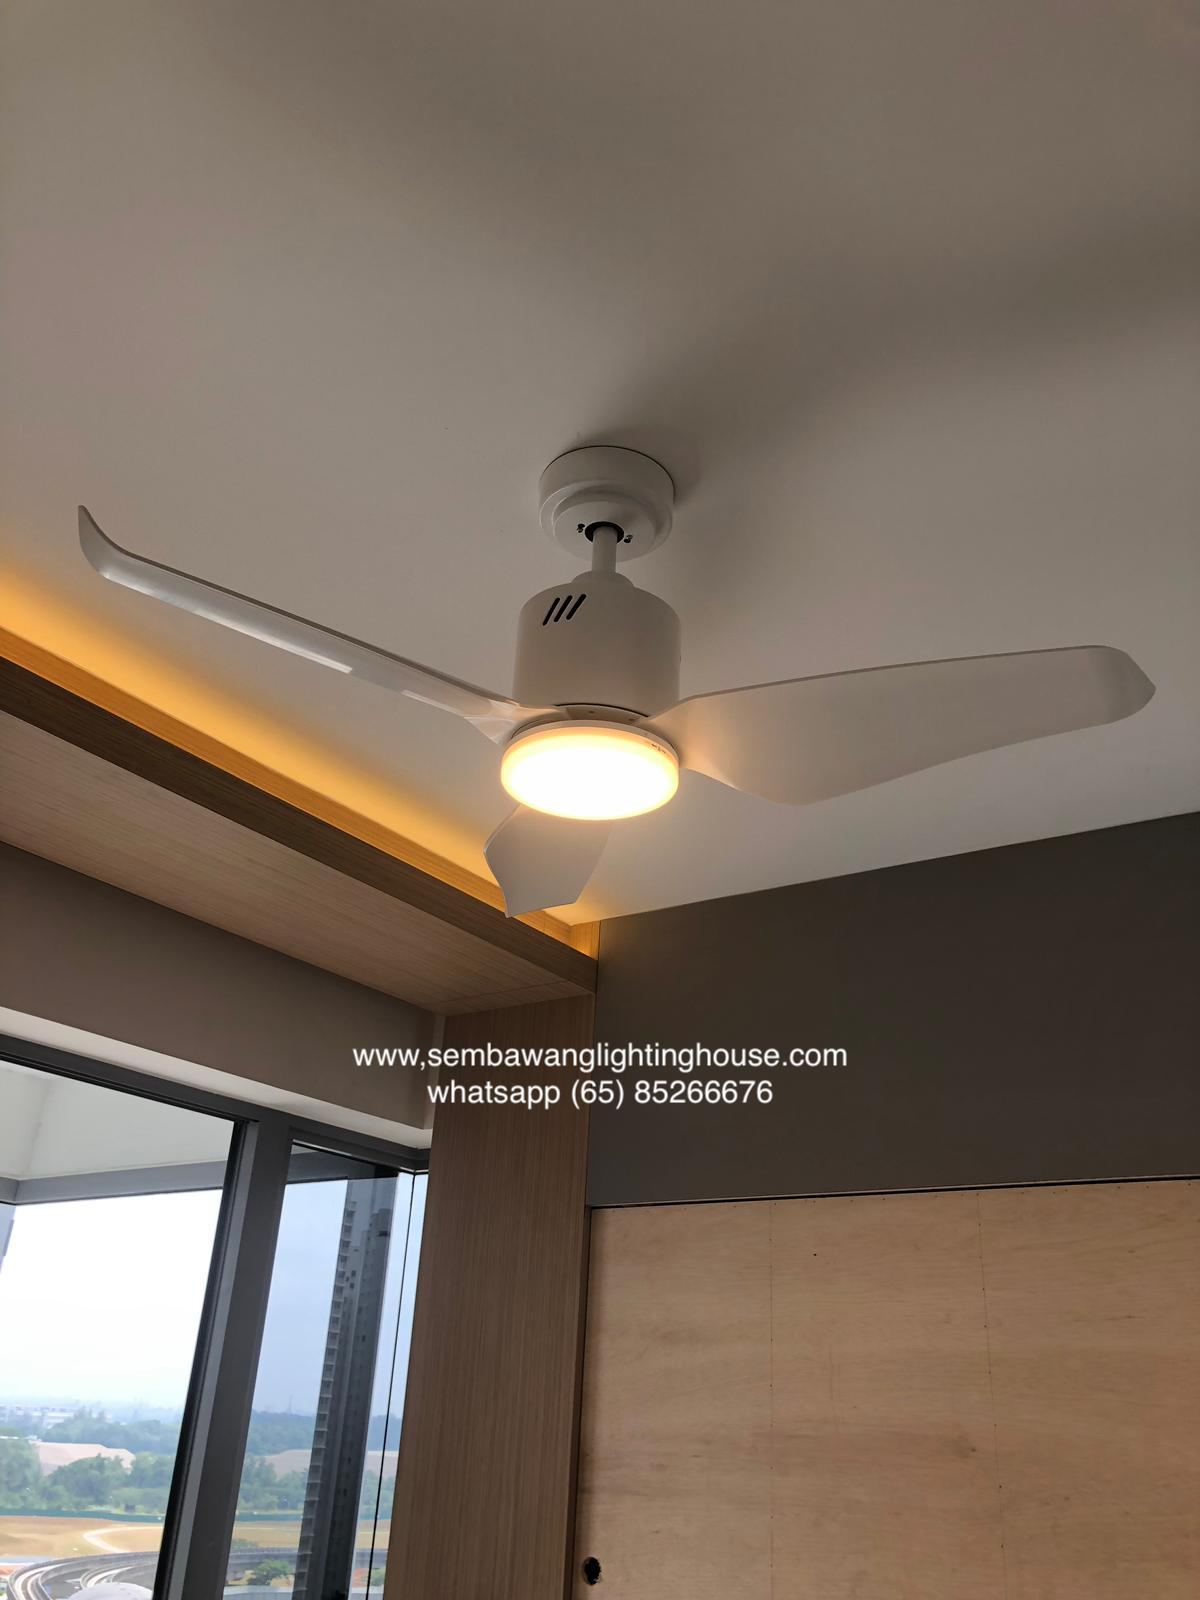 sample-01-kaze-zino-white-led-ceiling-fan-sembawang-lighting-house.jpeg